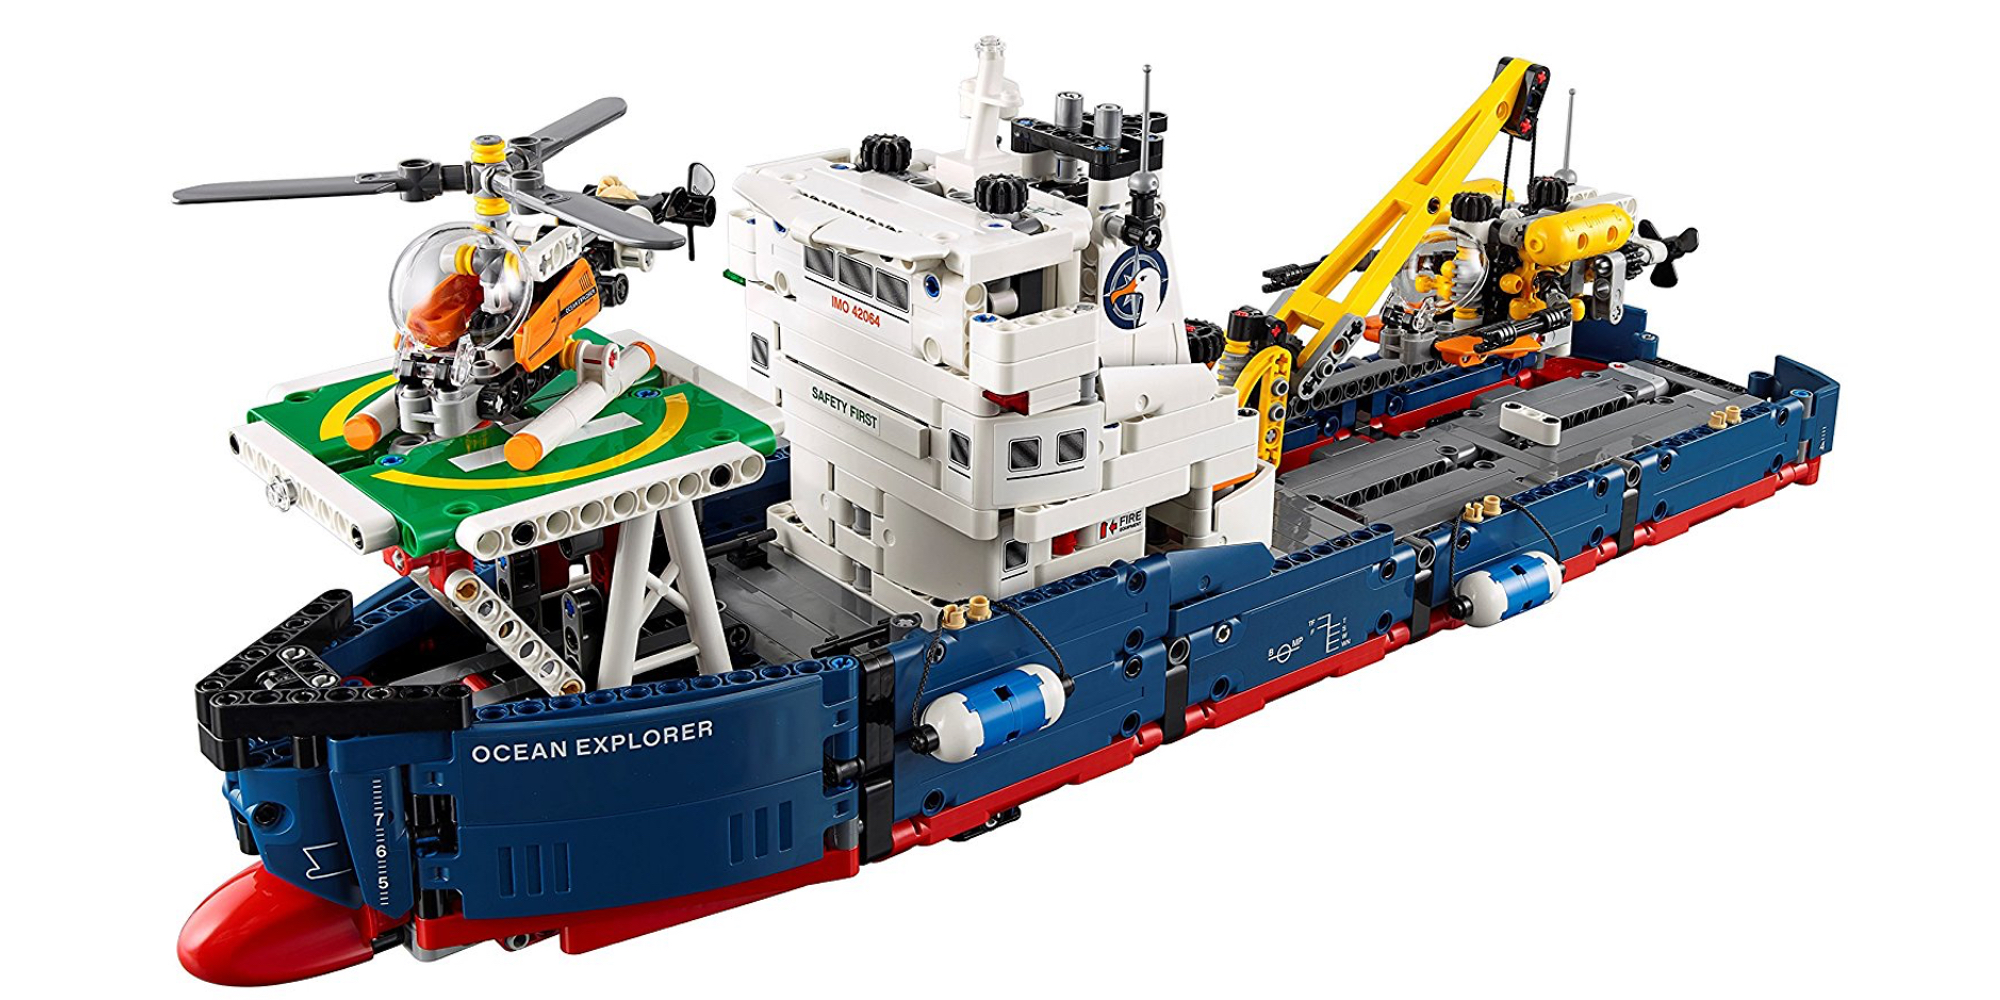 Assemble LEGO's 1,300-piece Ocean Explorer for $95 (30% off), more from $29